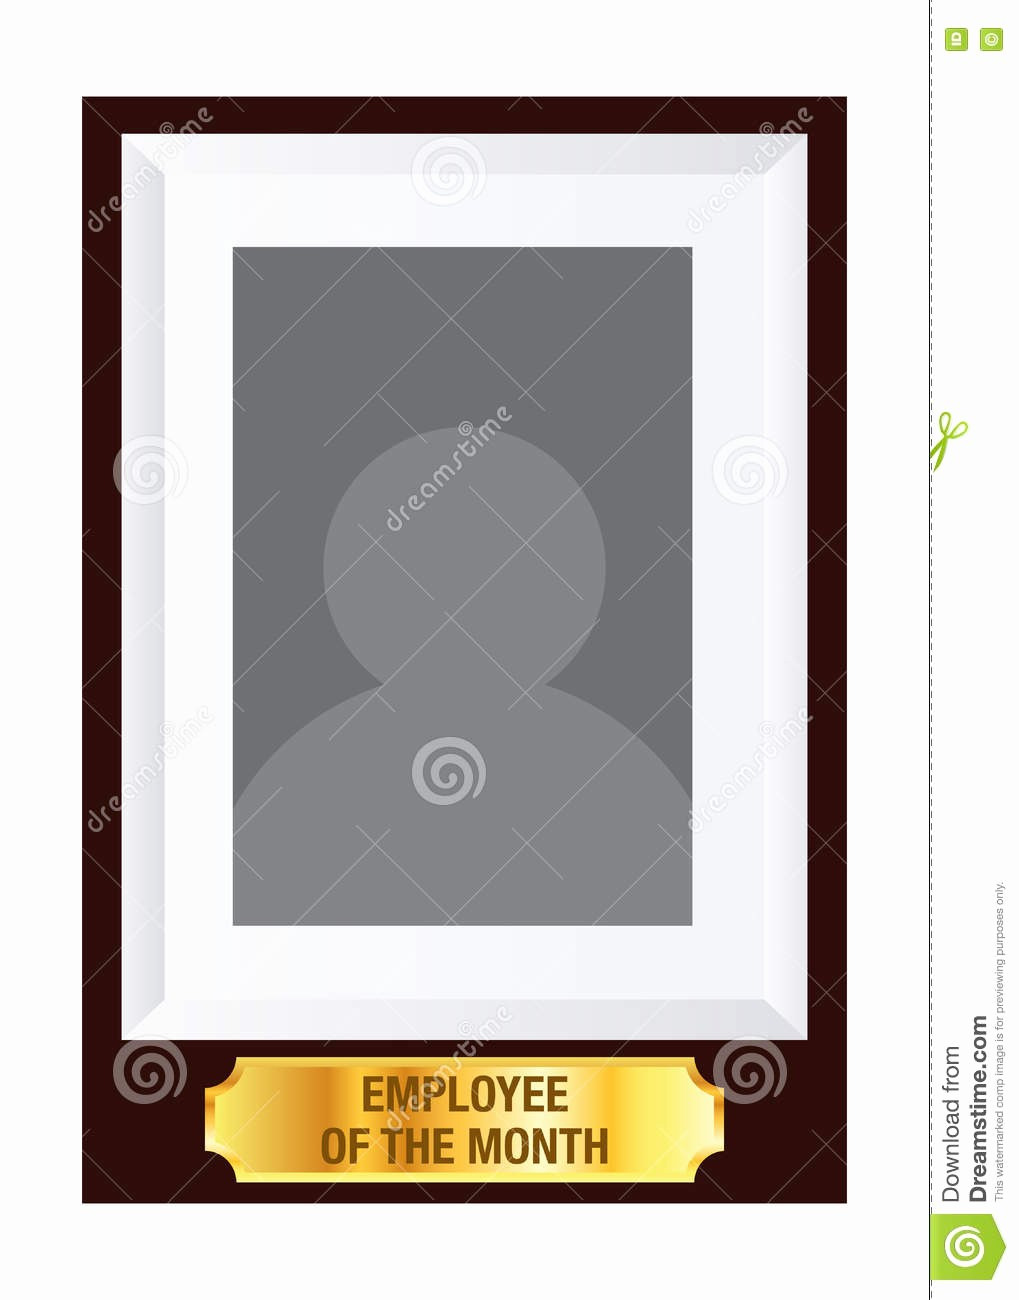 Employee Of the Month Free Beautiful Employee the Month Frame Template Stock Vector